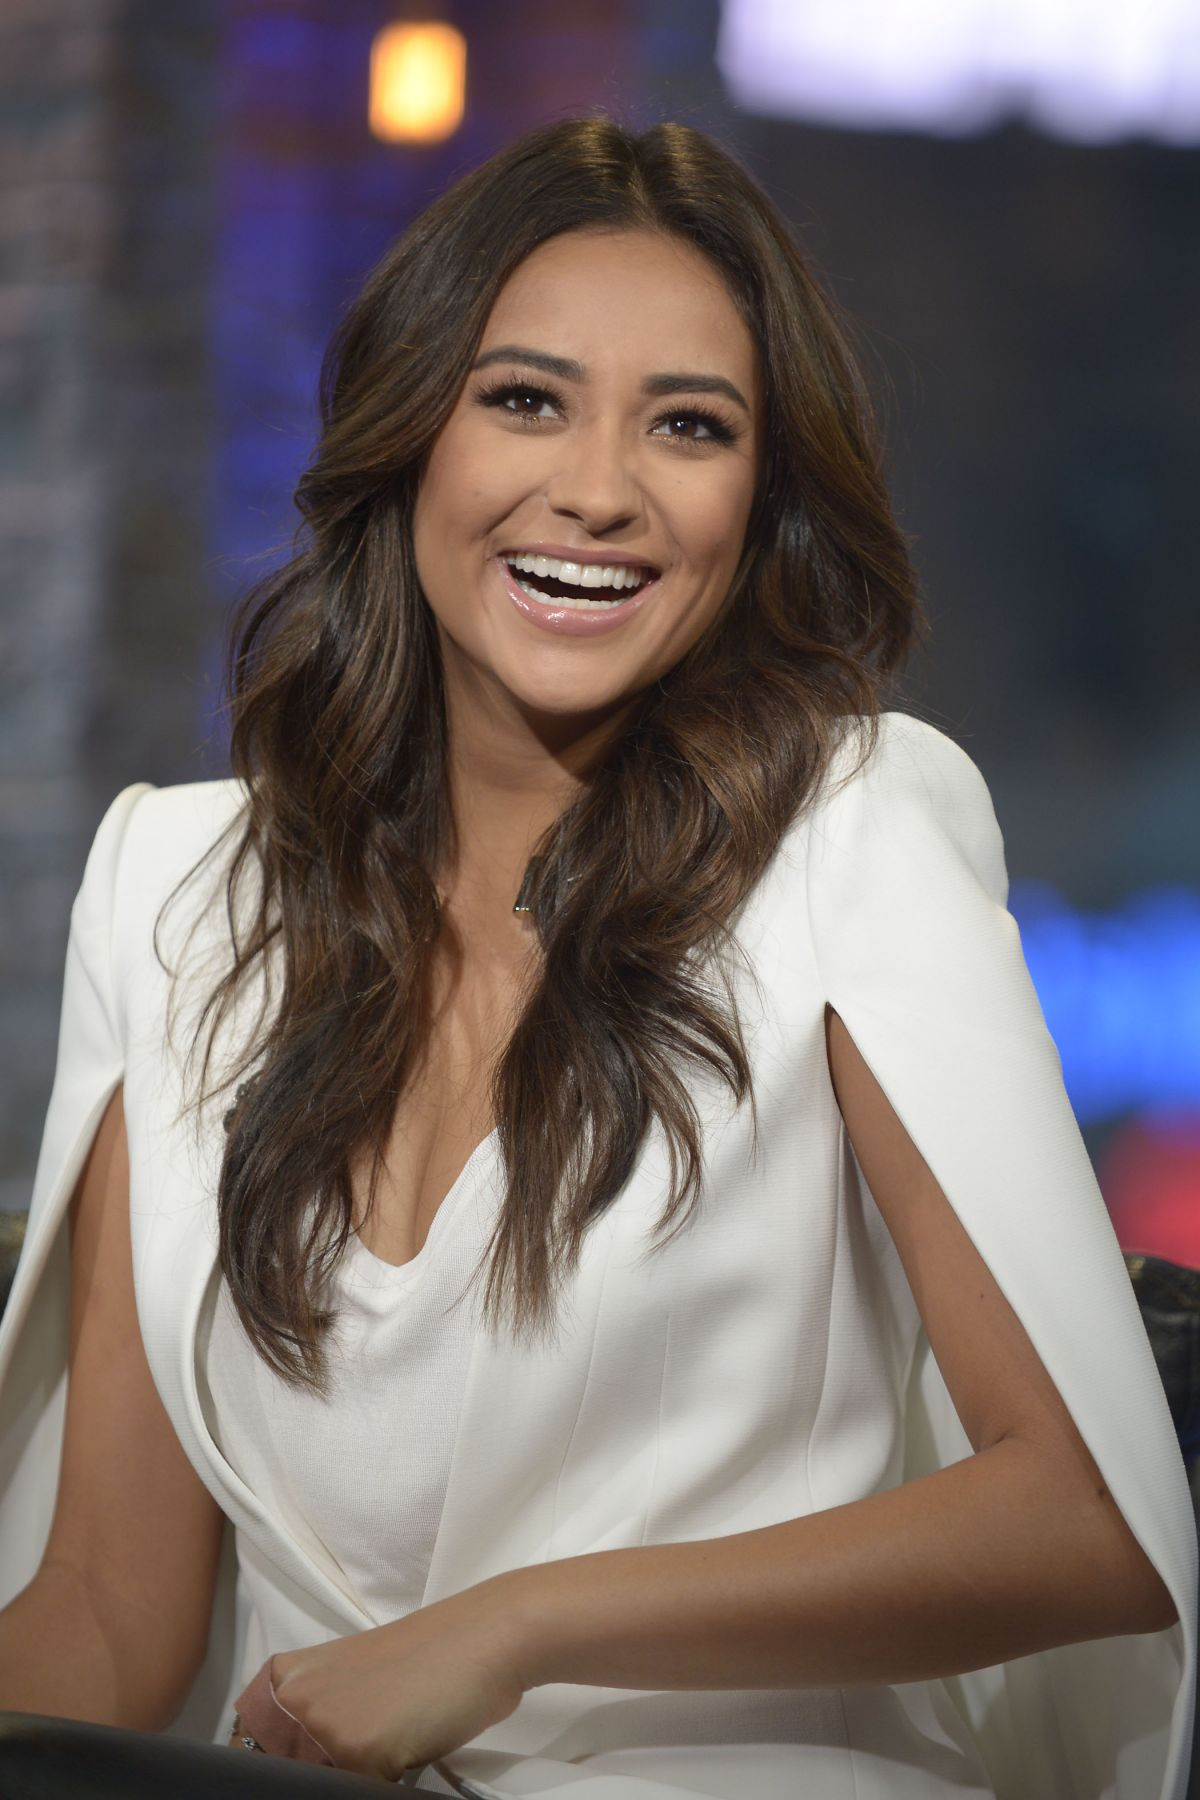 Shay Mitchell On The Set Of VH1 Big Morning Buzz Live In NY